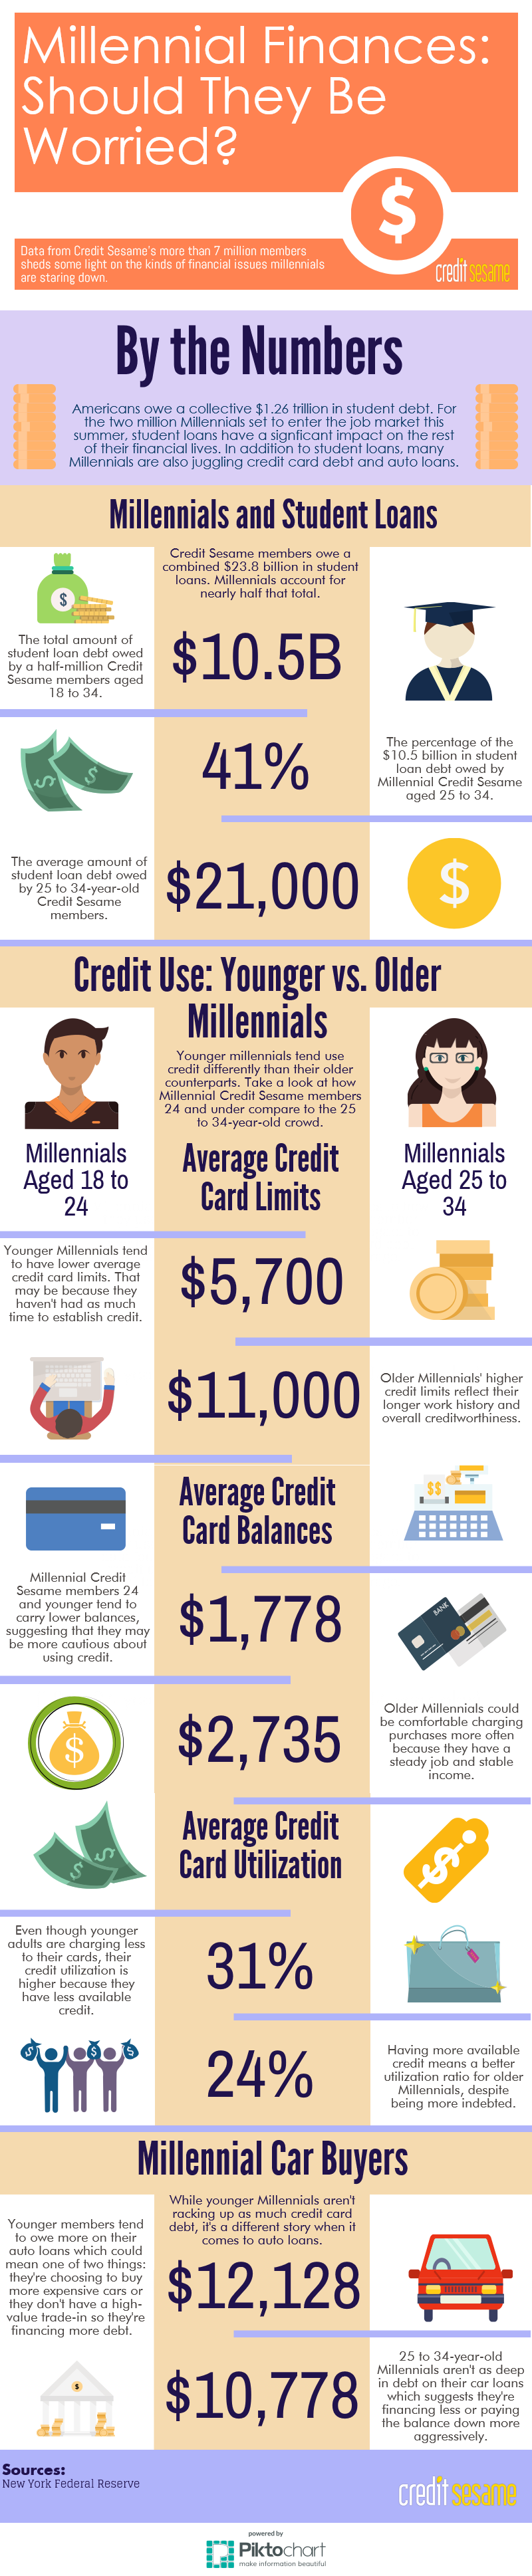 student-loans-and-millennials_(4)